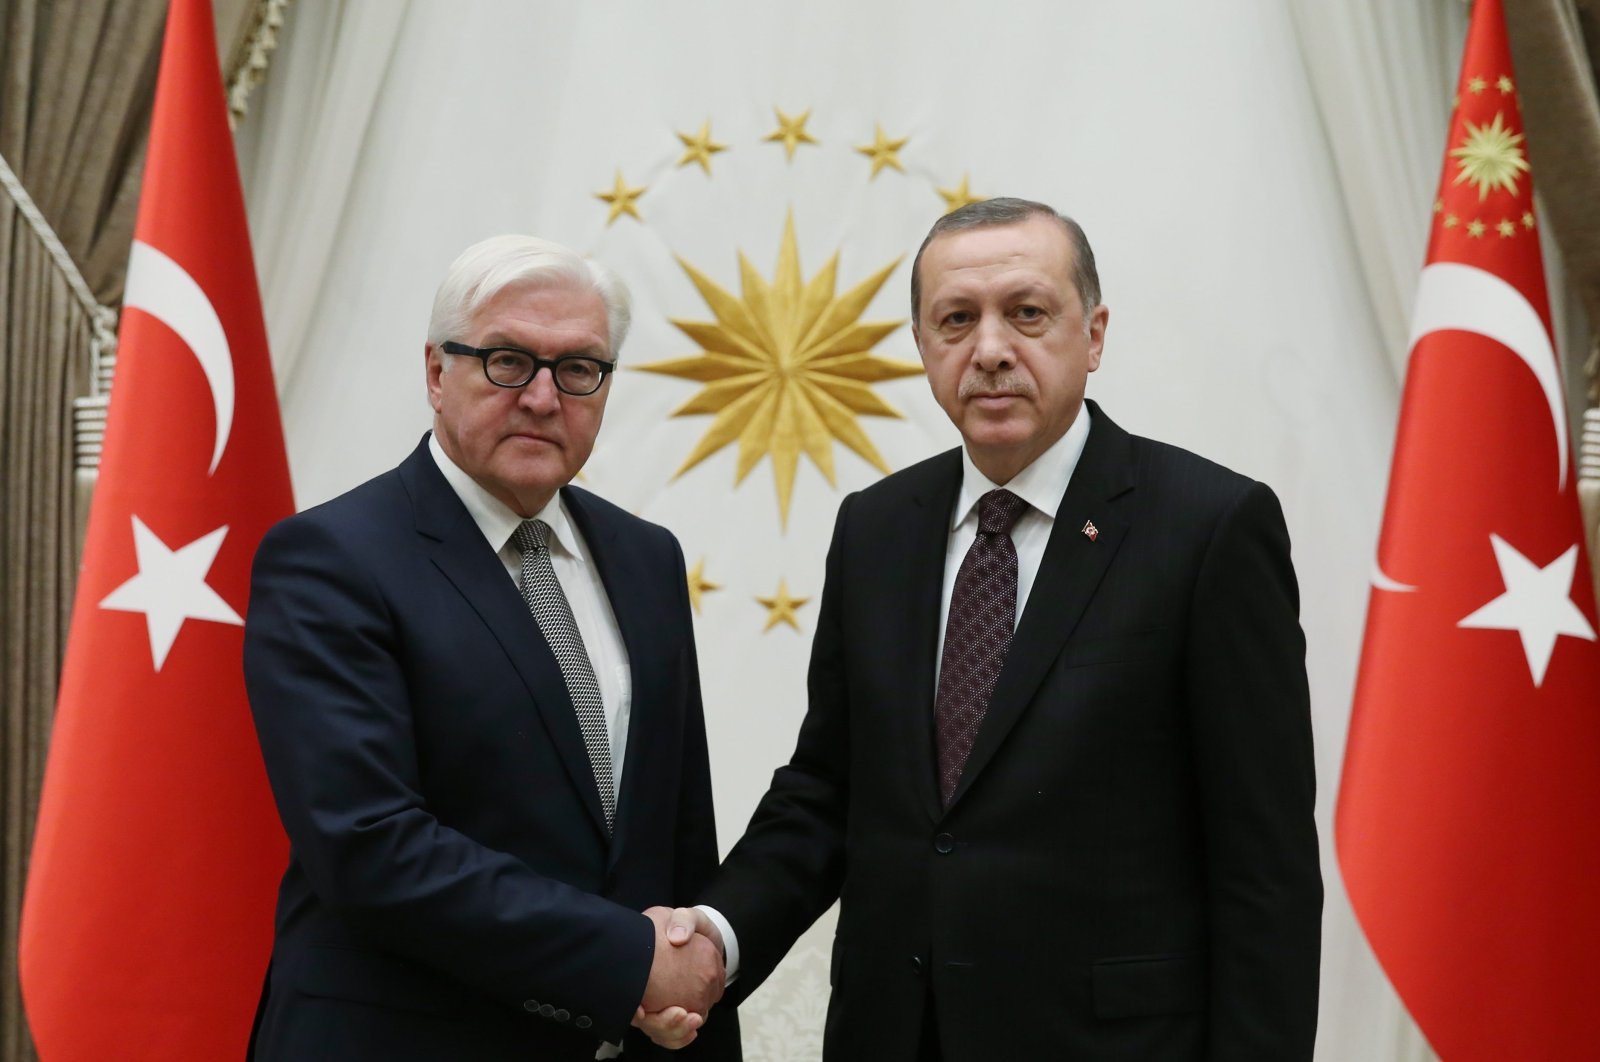 President Recep Tayyip Erdoğan together with then Foreign Minister and current German President Frank Walter-Steinmeier at the Presidential Complex, Ankara, Nov. 15, 2016 (AA Photo)